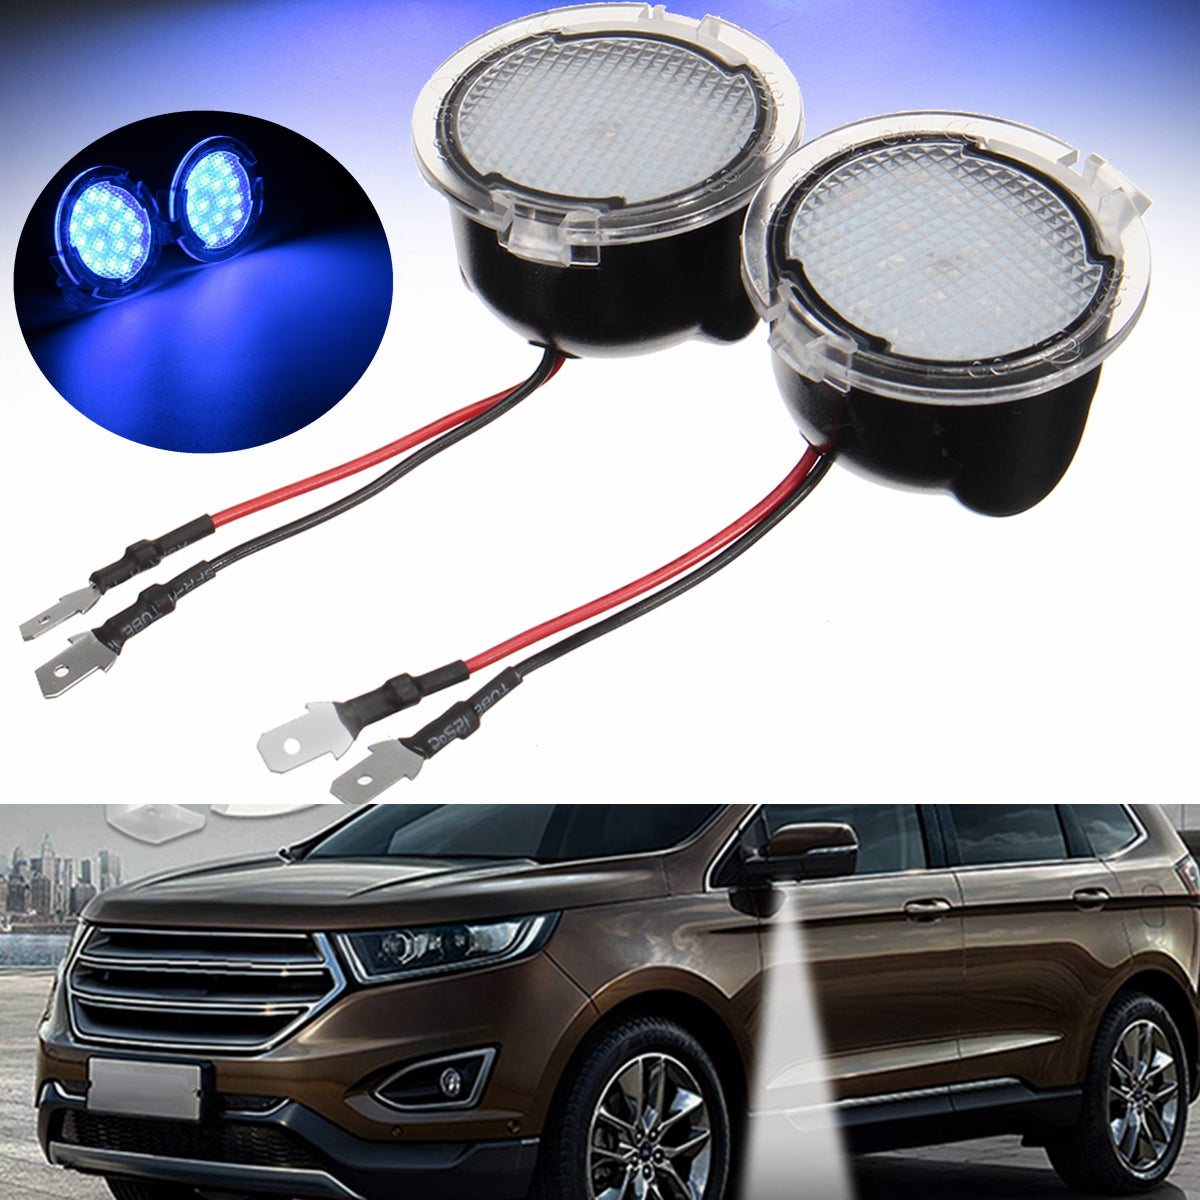 12LED,12.20 Louvra LED Fish Tank Lights Aquarium Air Pump Light 18 Led RGB Color Changing Submersible Air Stone Underwater Air Bubble Lamps with UK Standard Plug